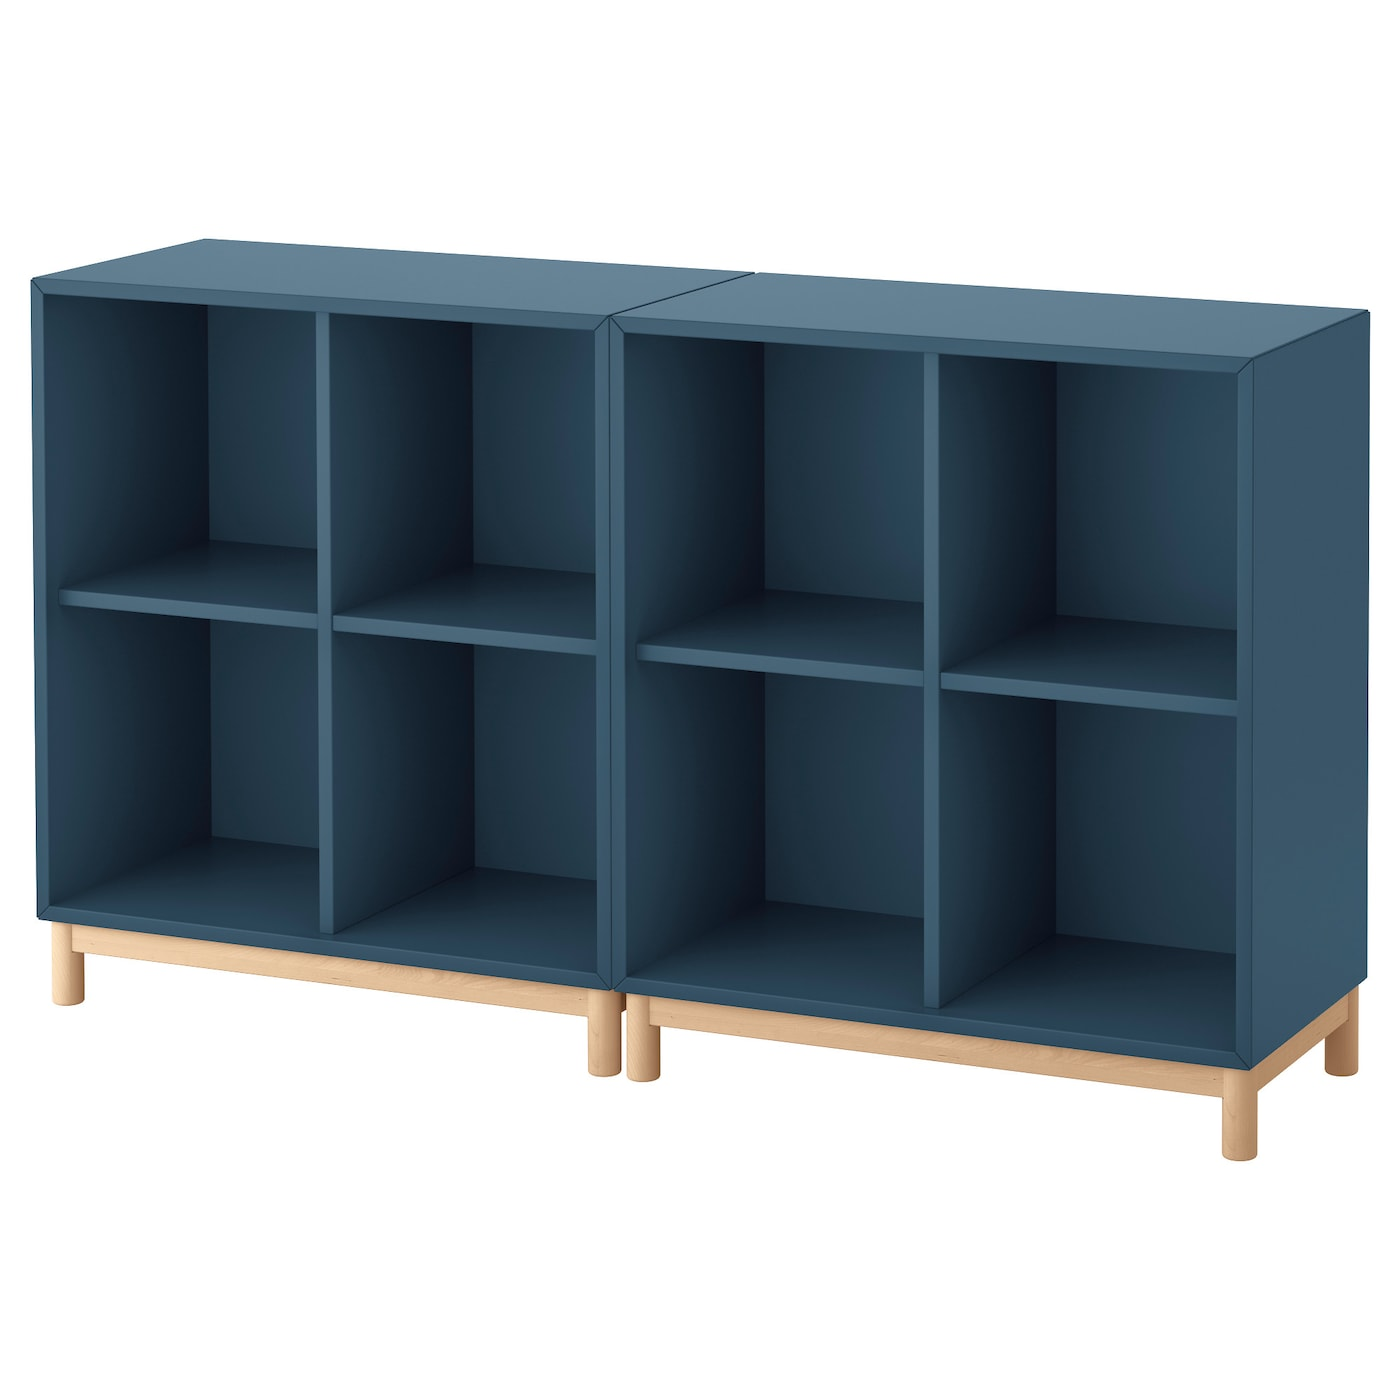 eket cabinet combination with legs dark blue 140 x 35 x 80 cm ikea. Black Bedroom Furniture Sets. Home Design Ideas